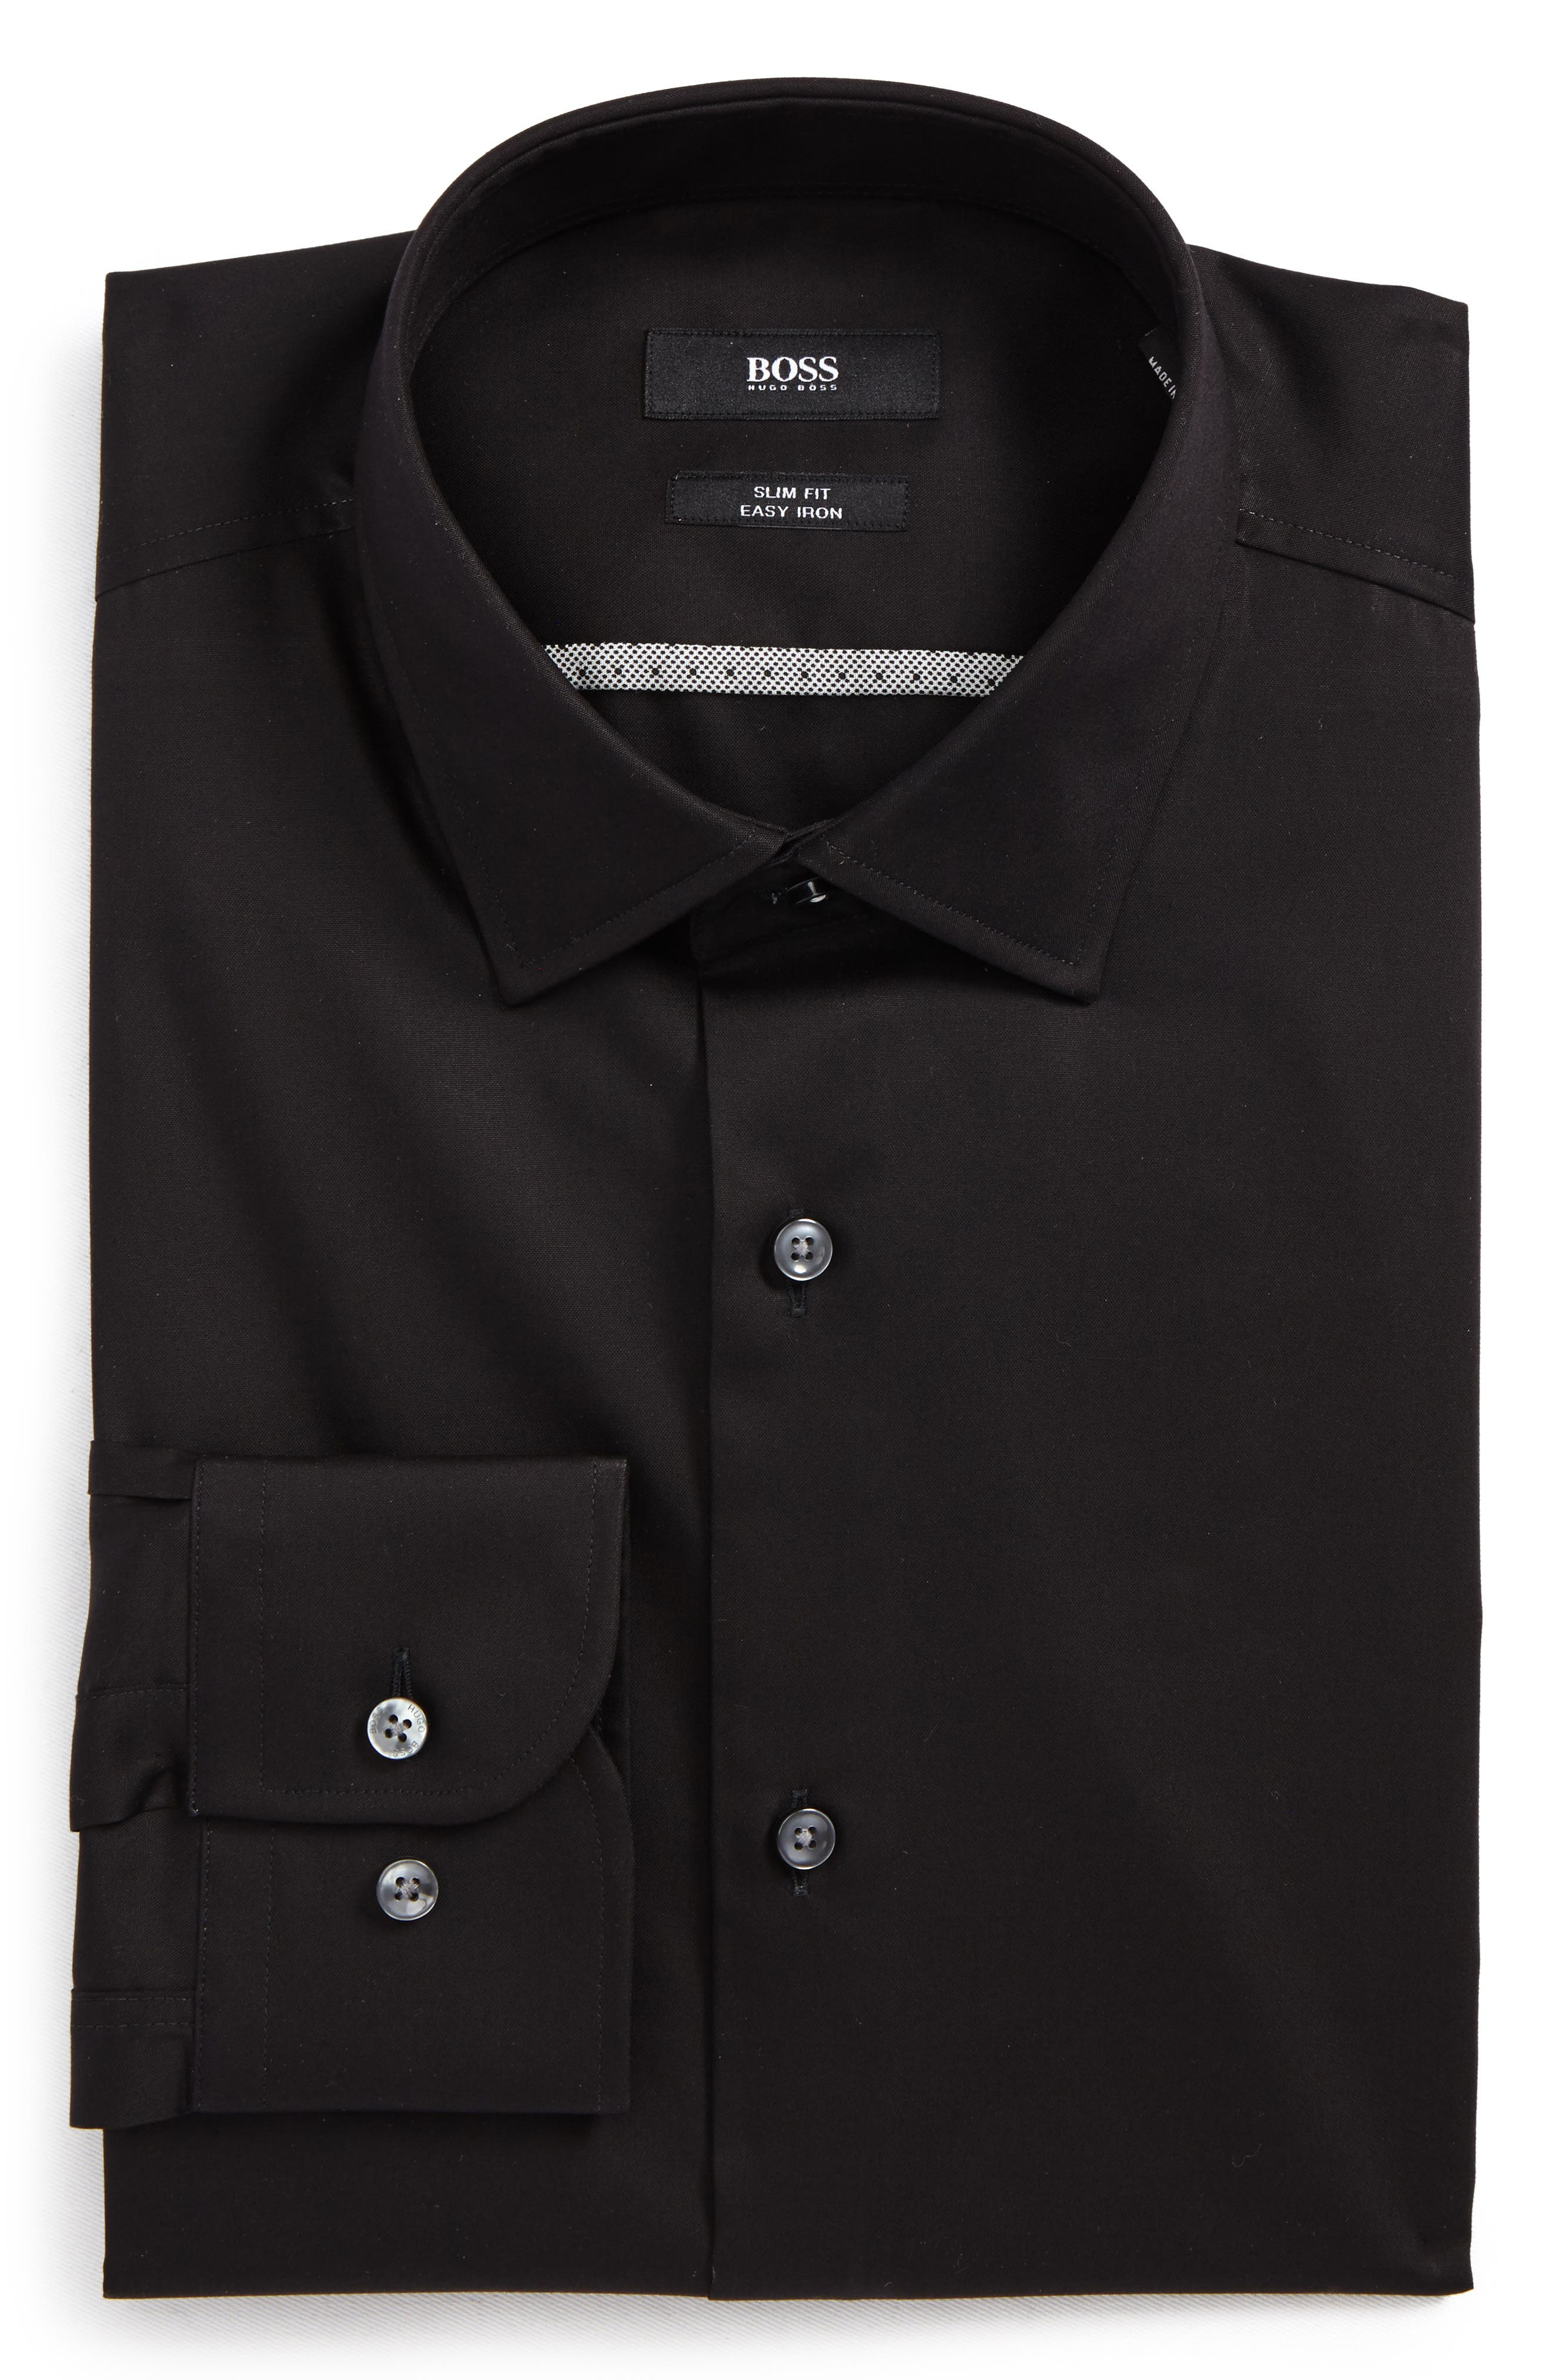 Jerris Slim Fit Dress Shirt,                             Main thumbnail 1, color,                             Black